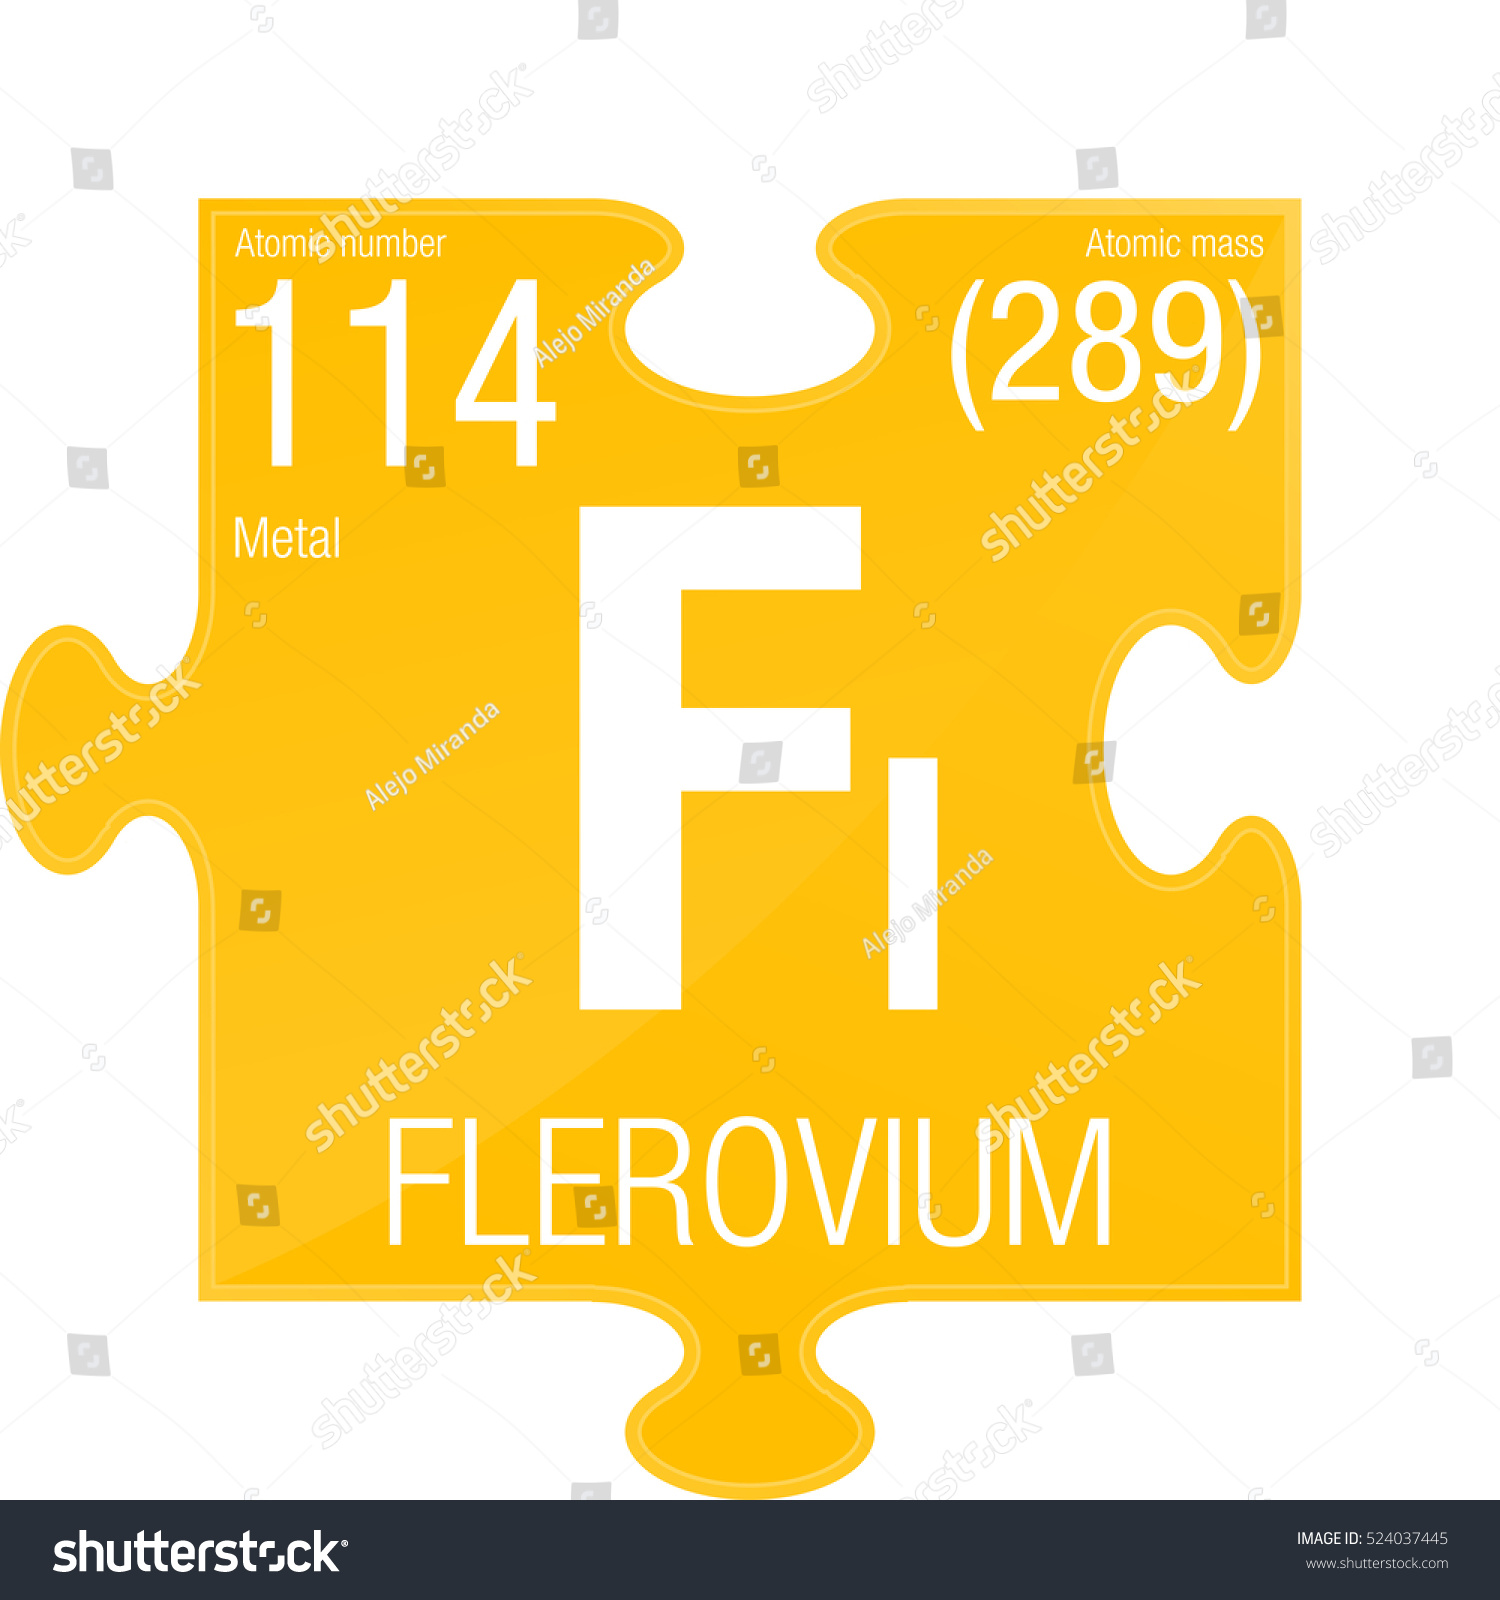 Periodic table of elements tin gallery periodic table images sn symbol periodic table image collections periodic table images symbol of tin in the periodic table gamestrikefo Gallery